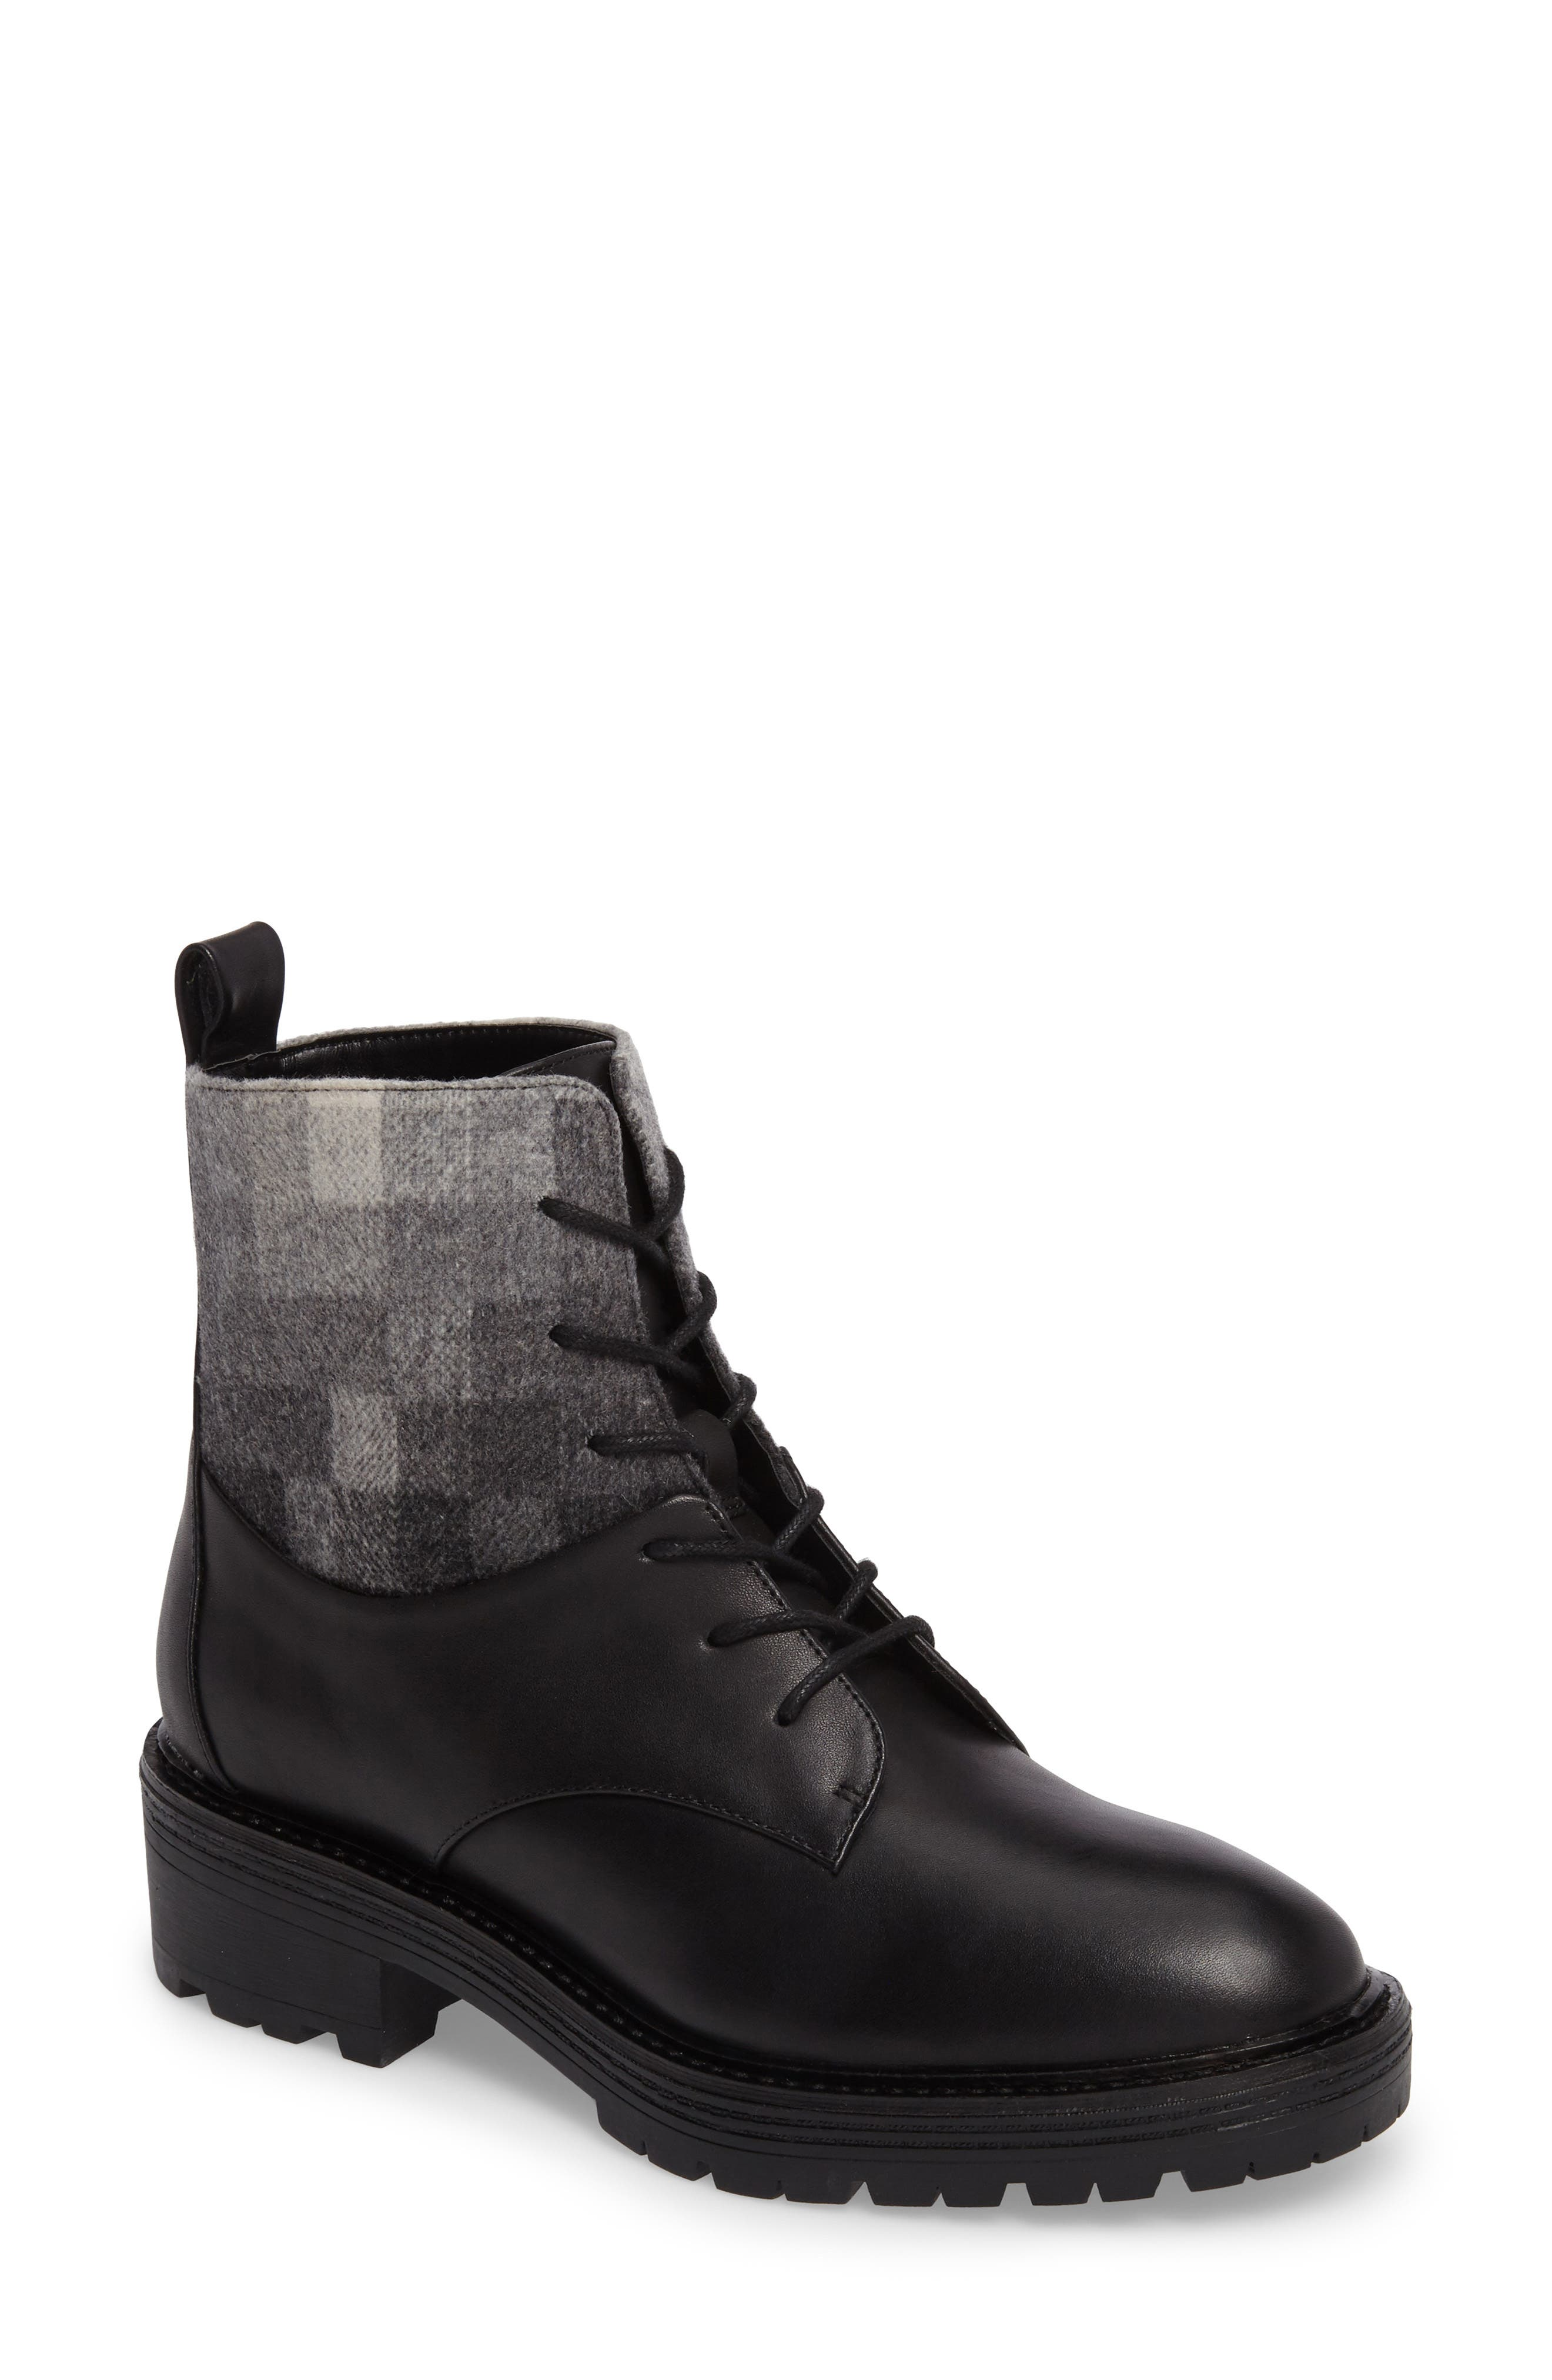 Main Image - Kelsi Dagger Brooklyn Midwood Bootie (Women)